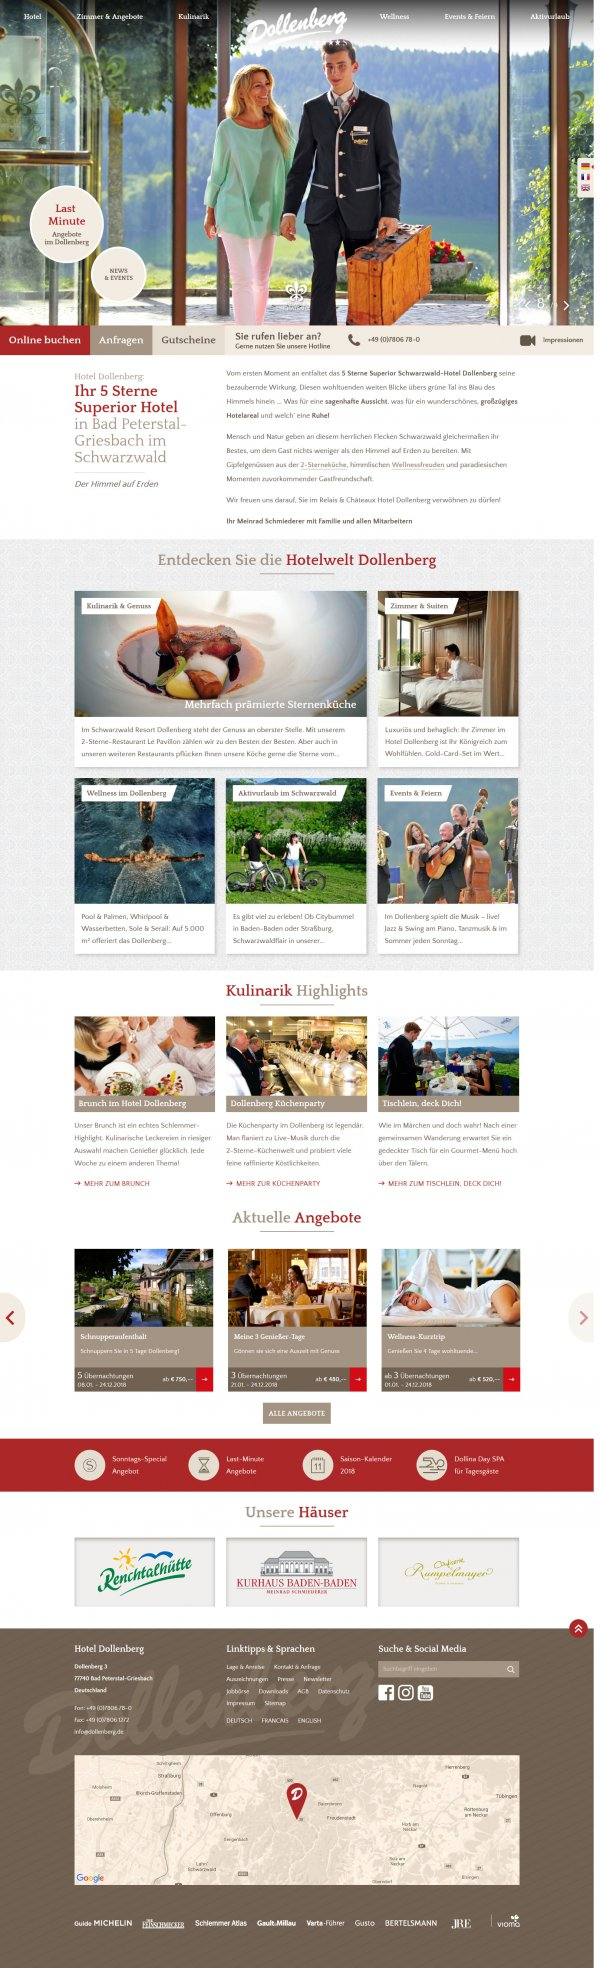 Website Dollenberg Hotel